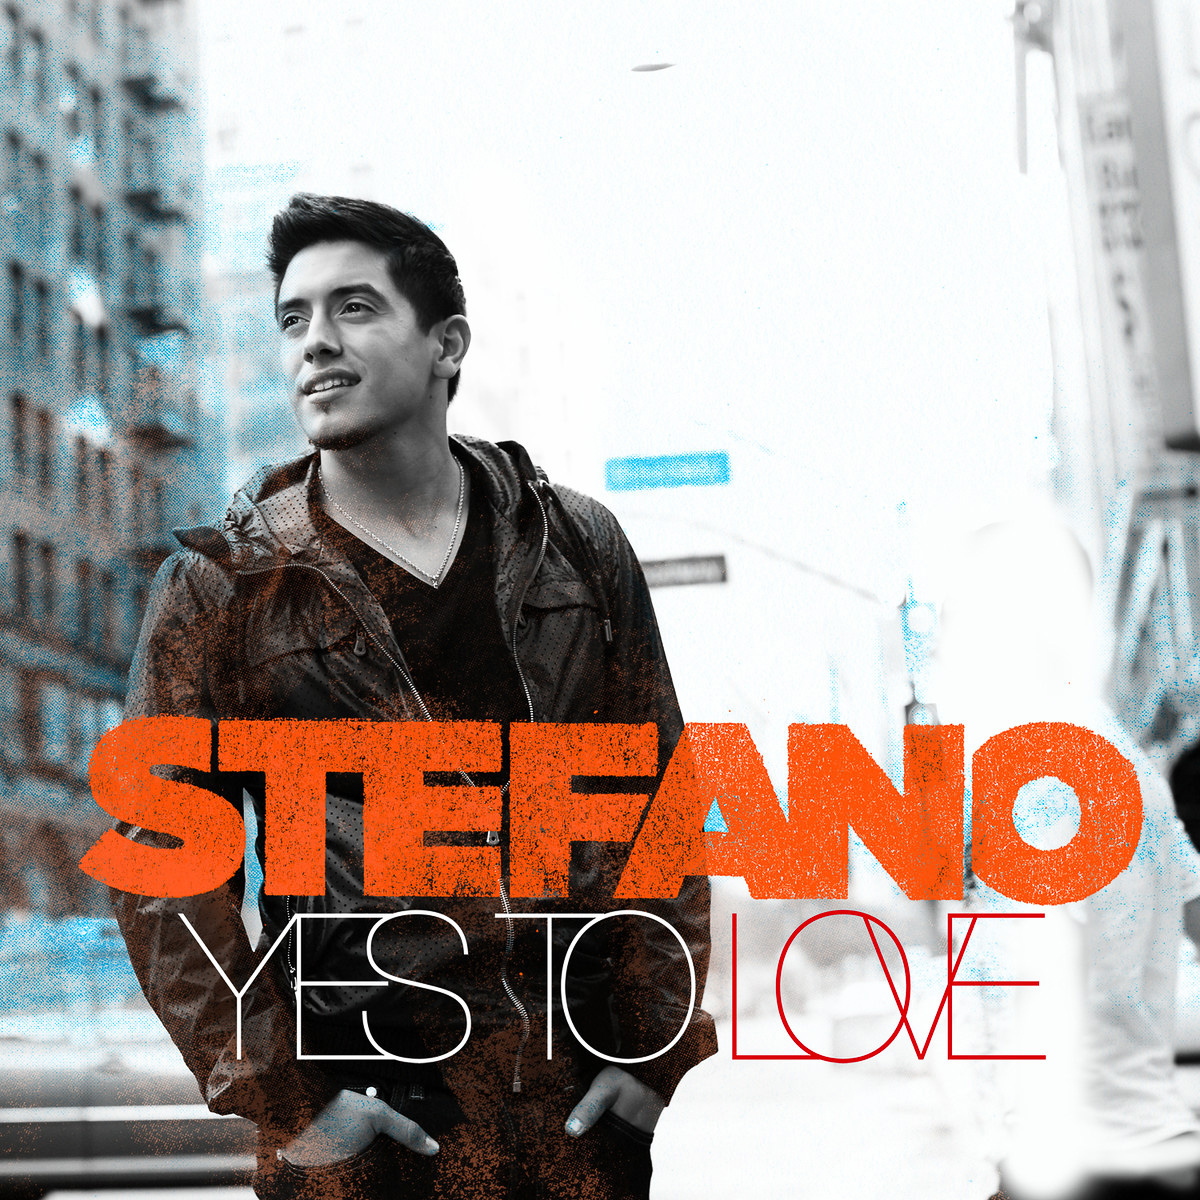 Stefano-Yes-to-Love-2013-1200x1200.jpg